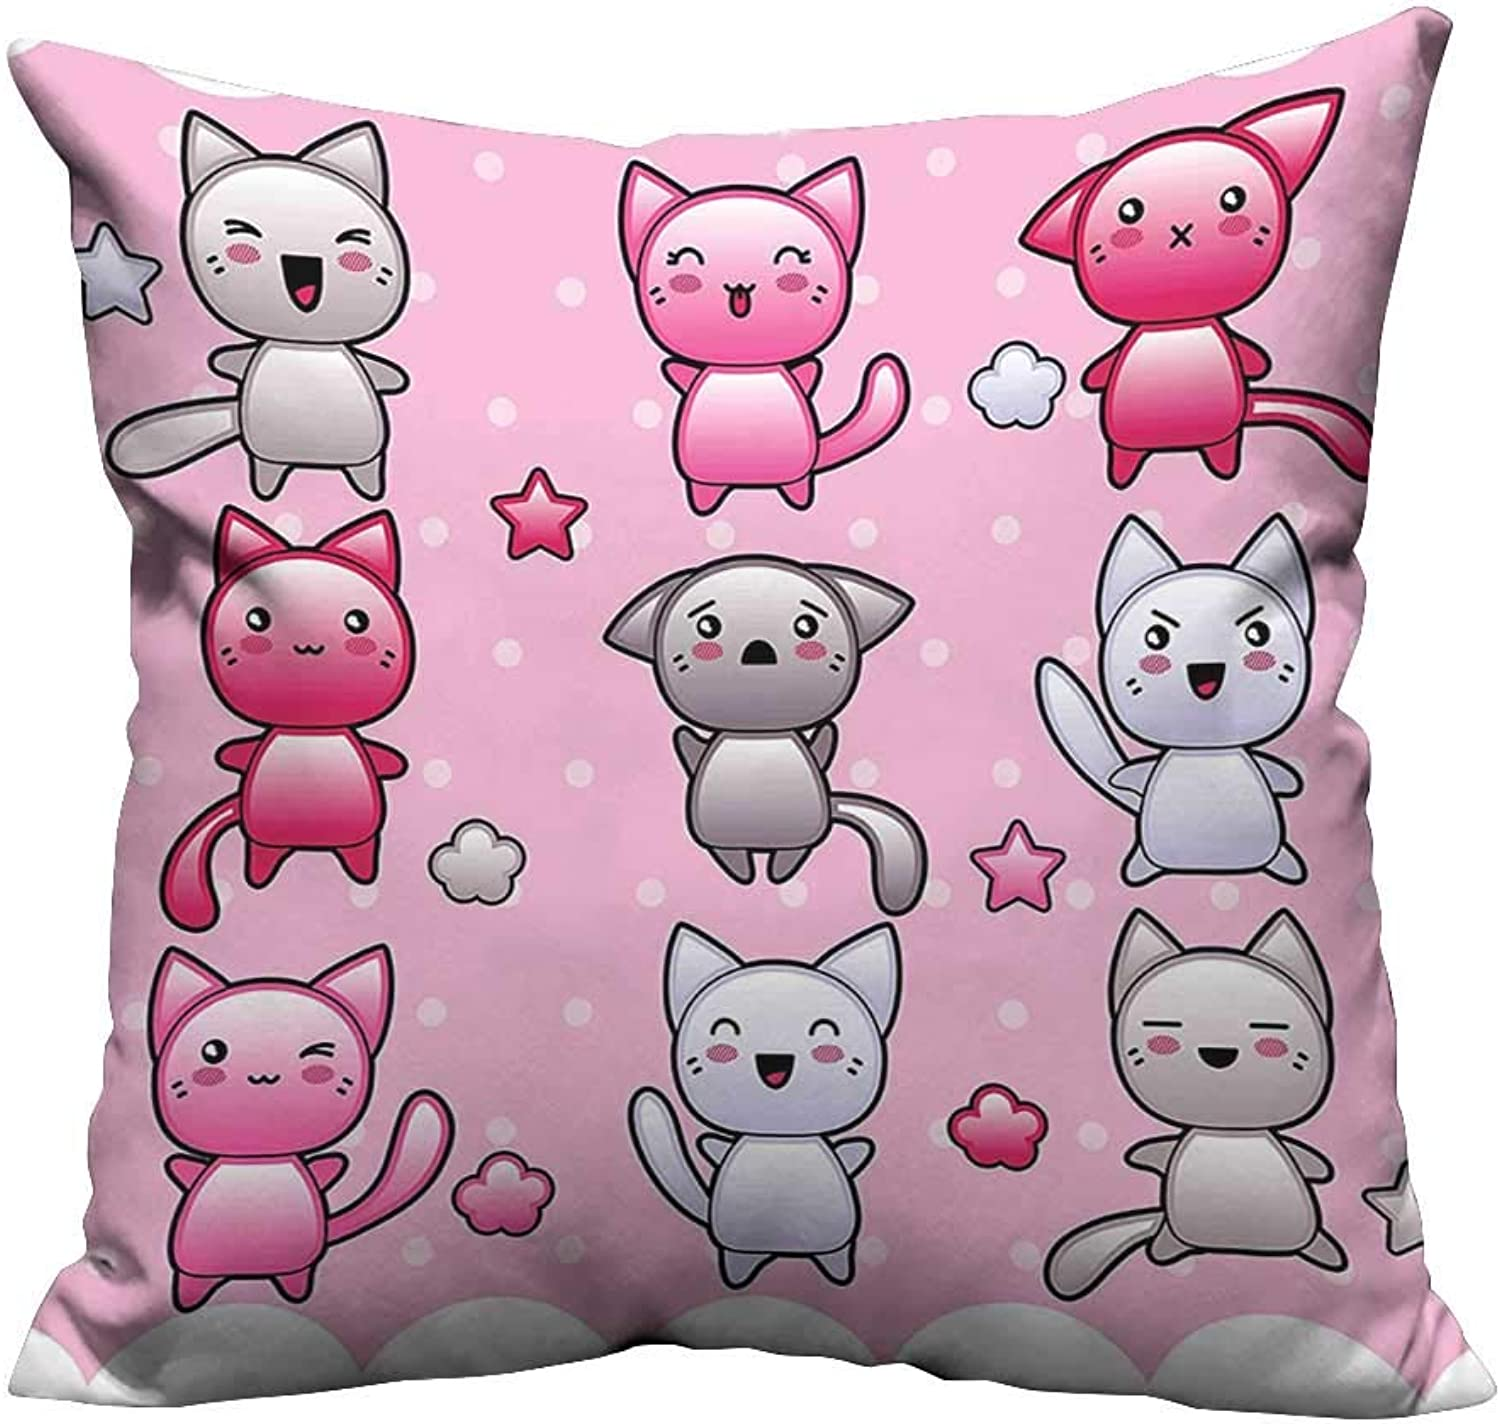 Alsohome Super Soft Pillowcase Kids Cute Kitty Doodl Funny Animal Theme Japan bluee Purple Resists Stains 31.5x31.5 inch(Double-Sided Printing)